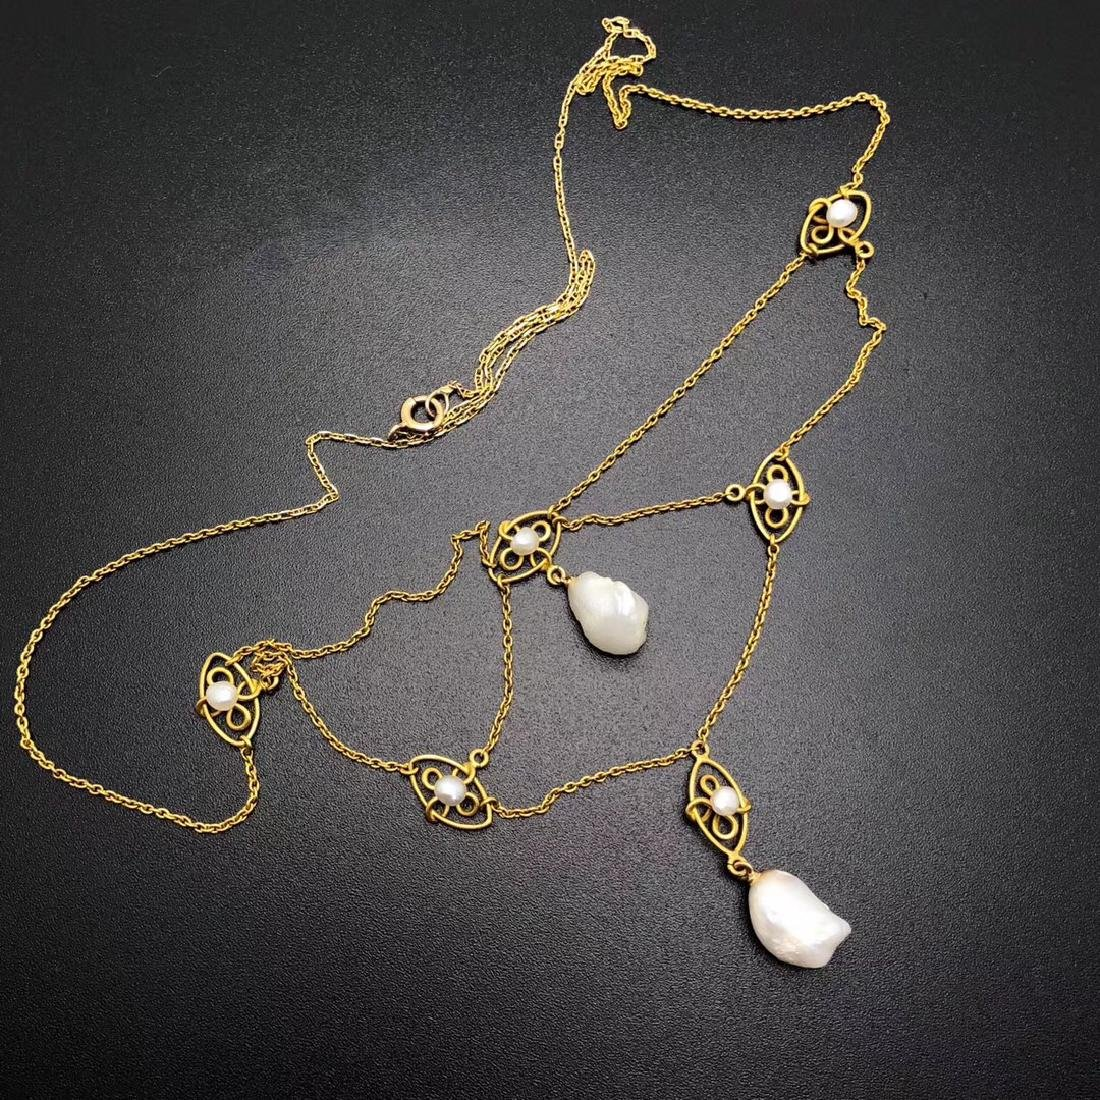 1920S 18K GOLD PEARL NECKLACE